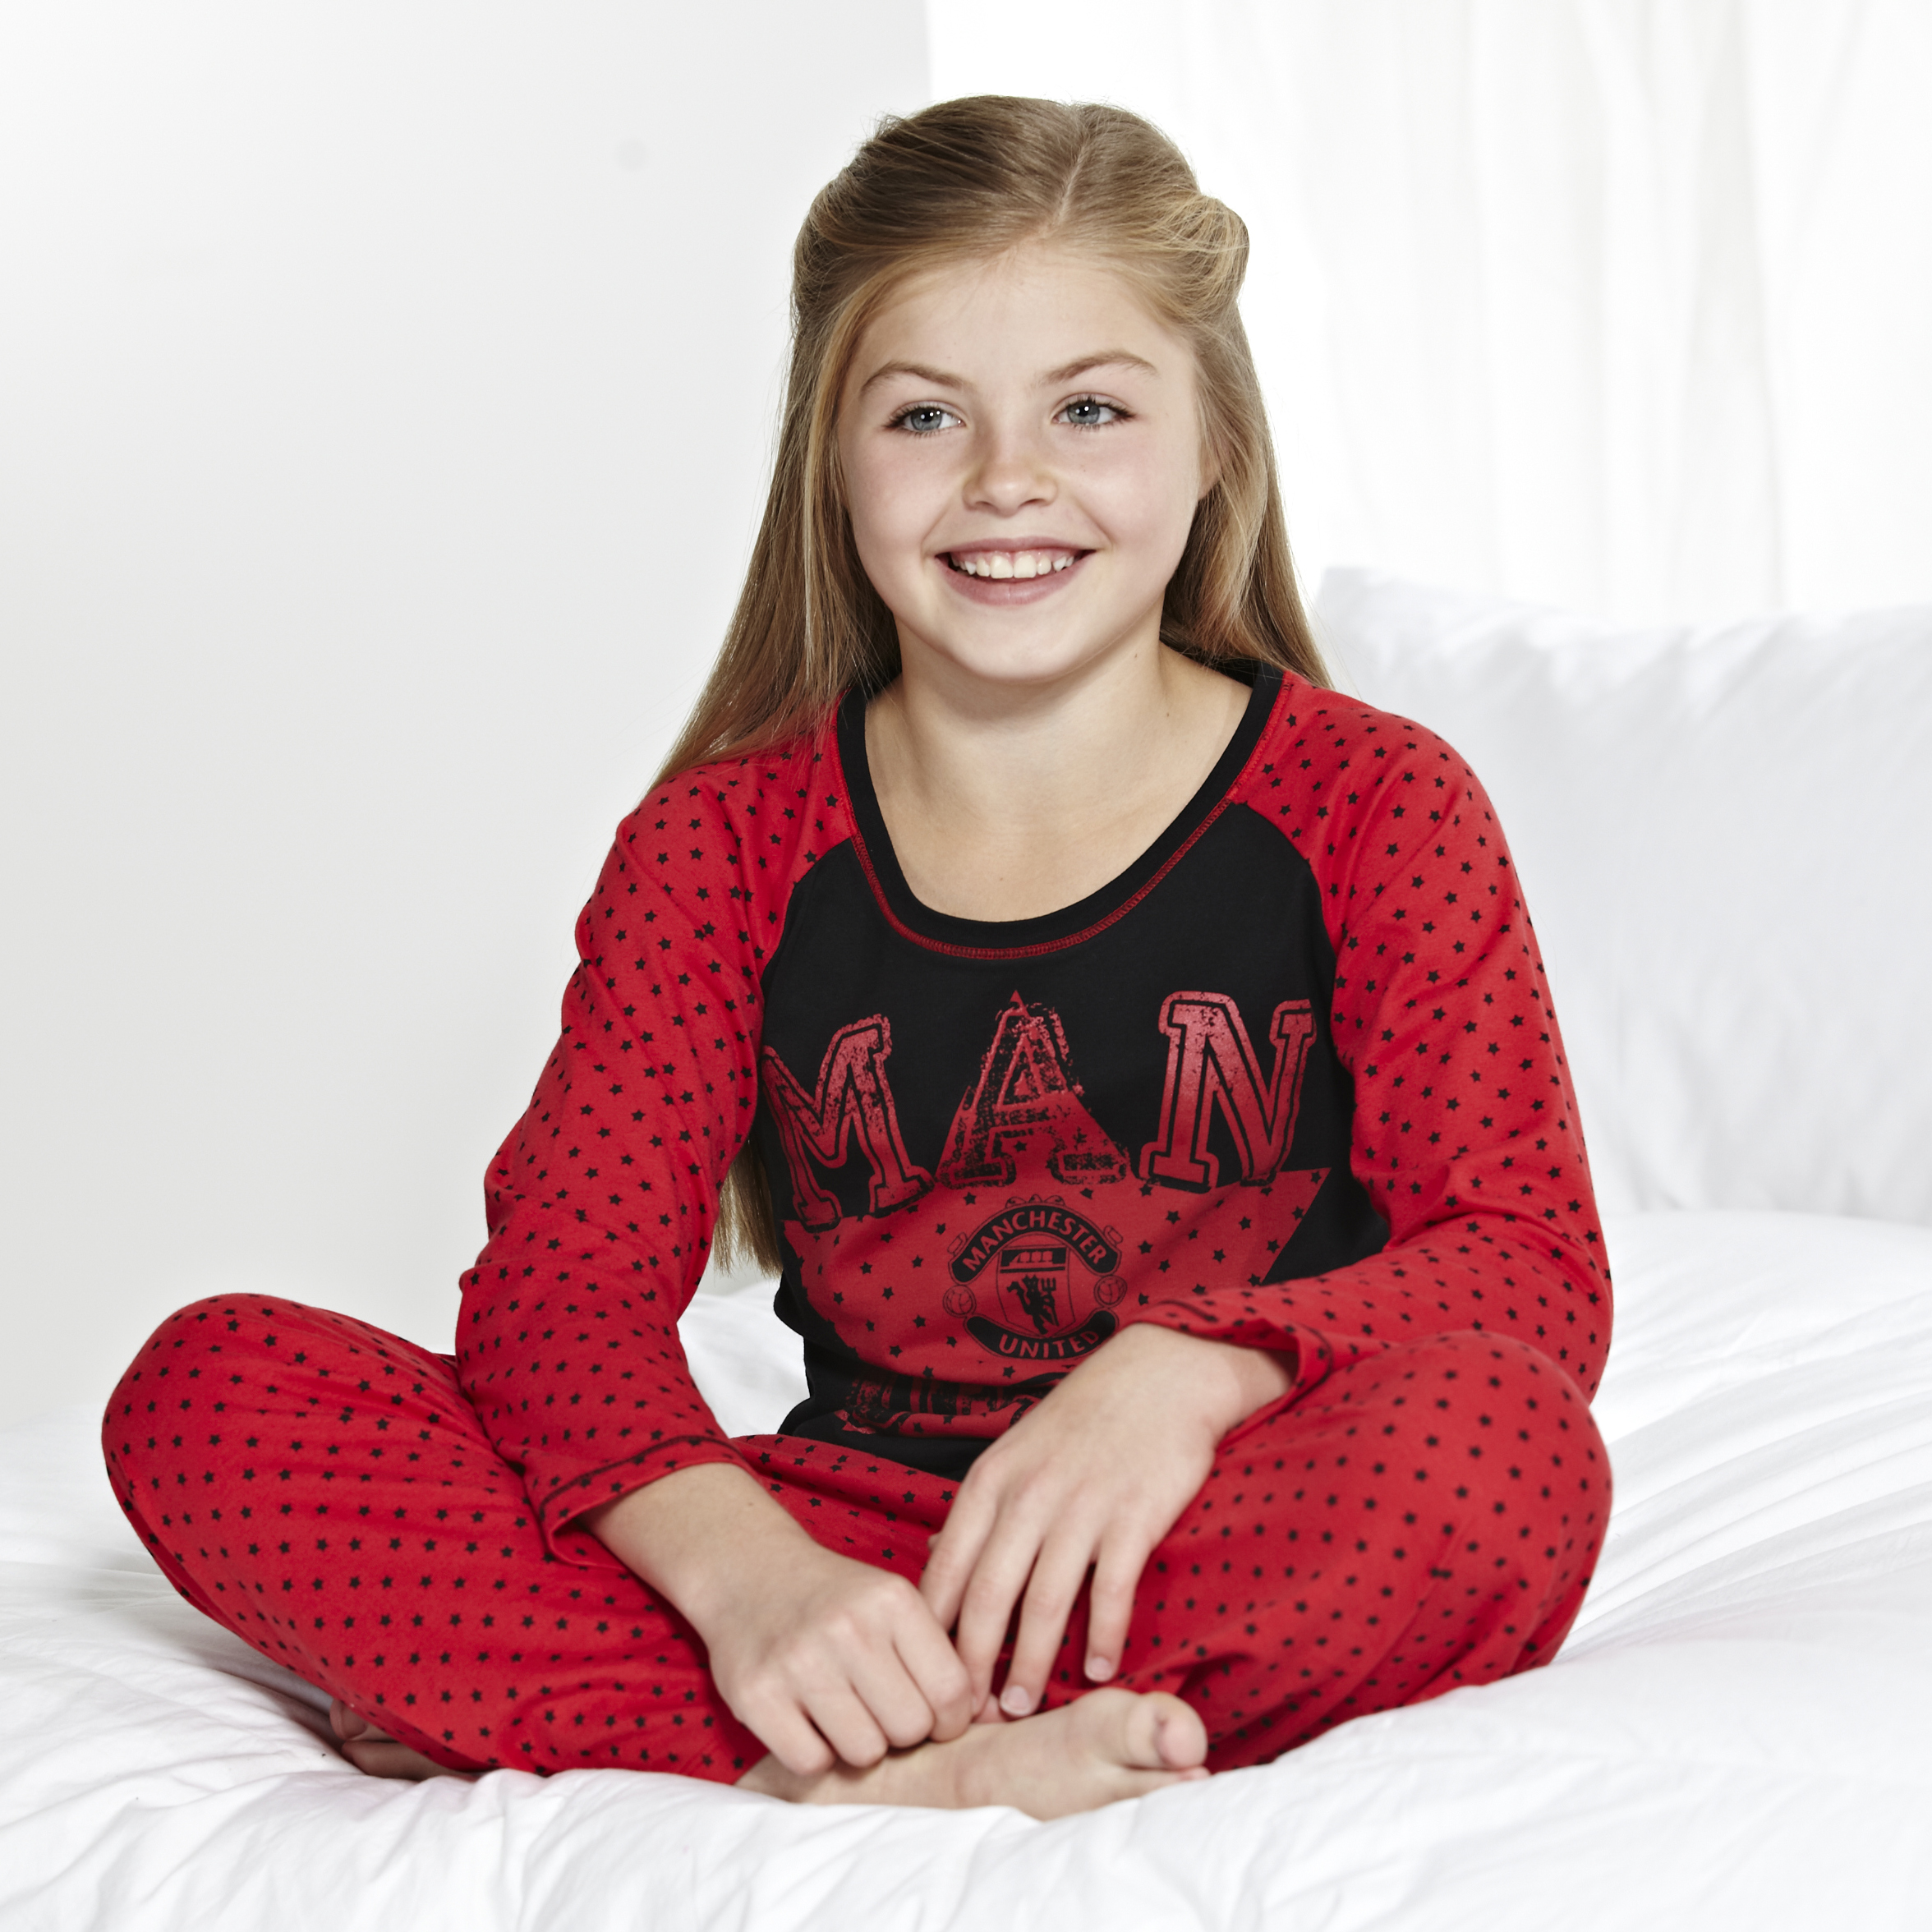 Manchester United Long Star Pyjamas - Red/Black - Older Girls